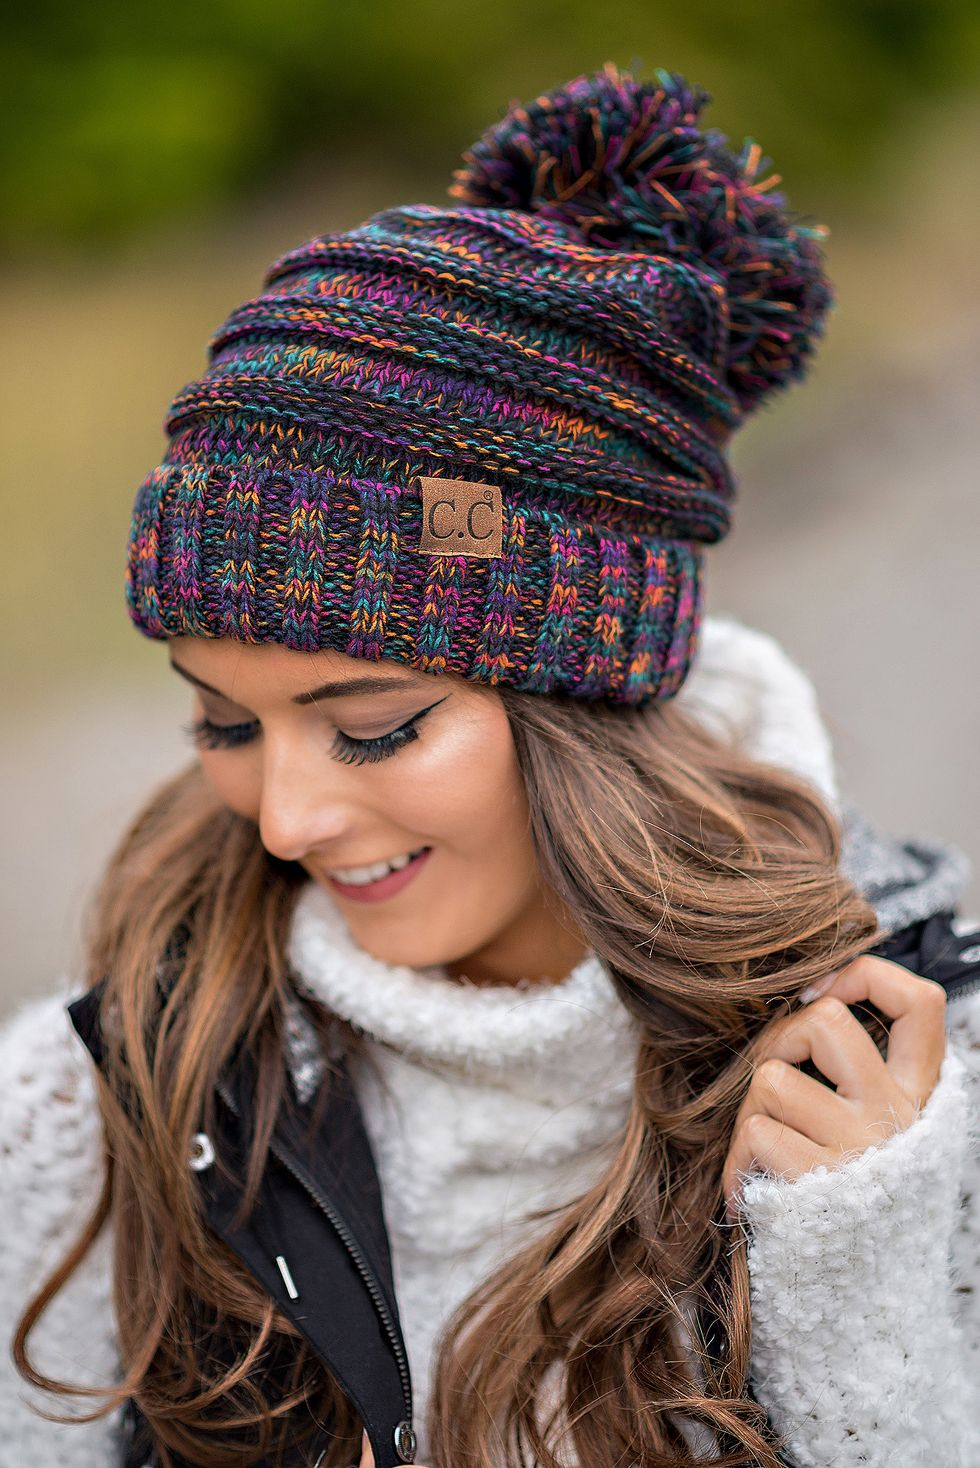 Fashionable Women Hats For Winter And Snow Outfits 23 -1855